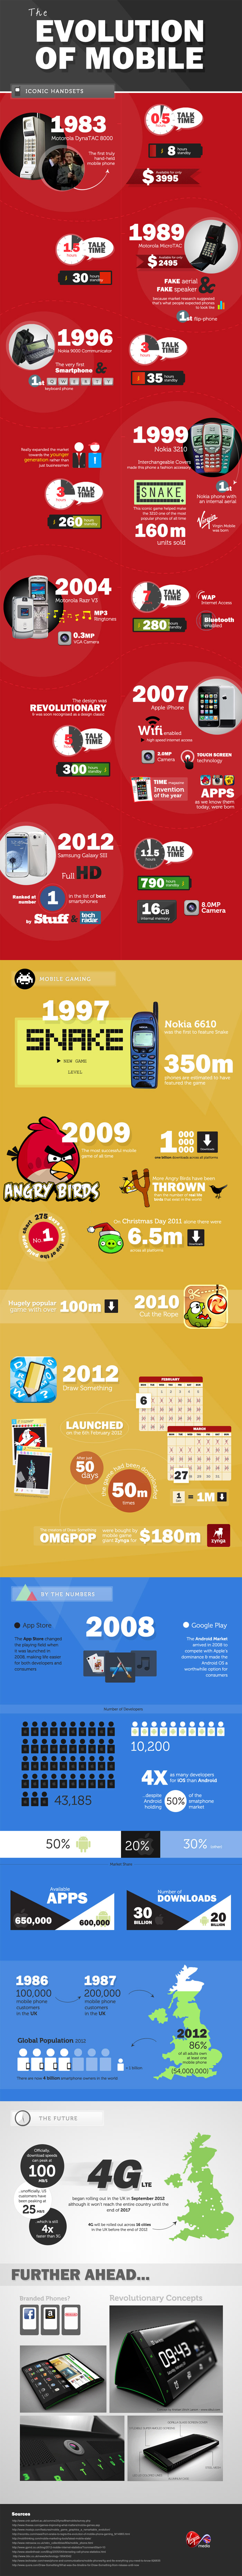 Virgin Mobile Infographic - The Evolution of Mobile